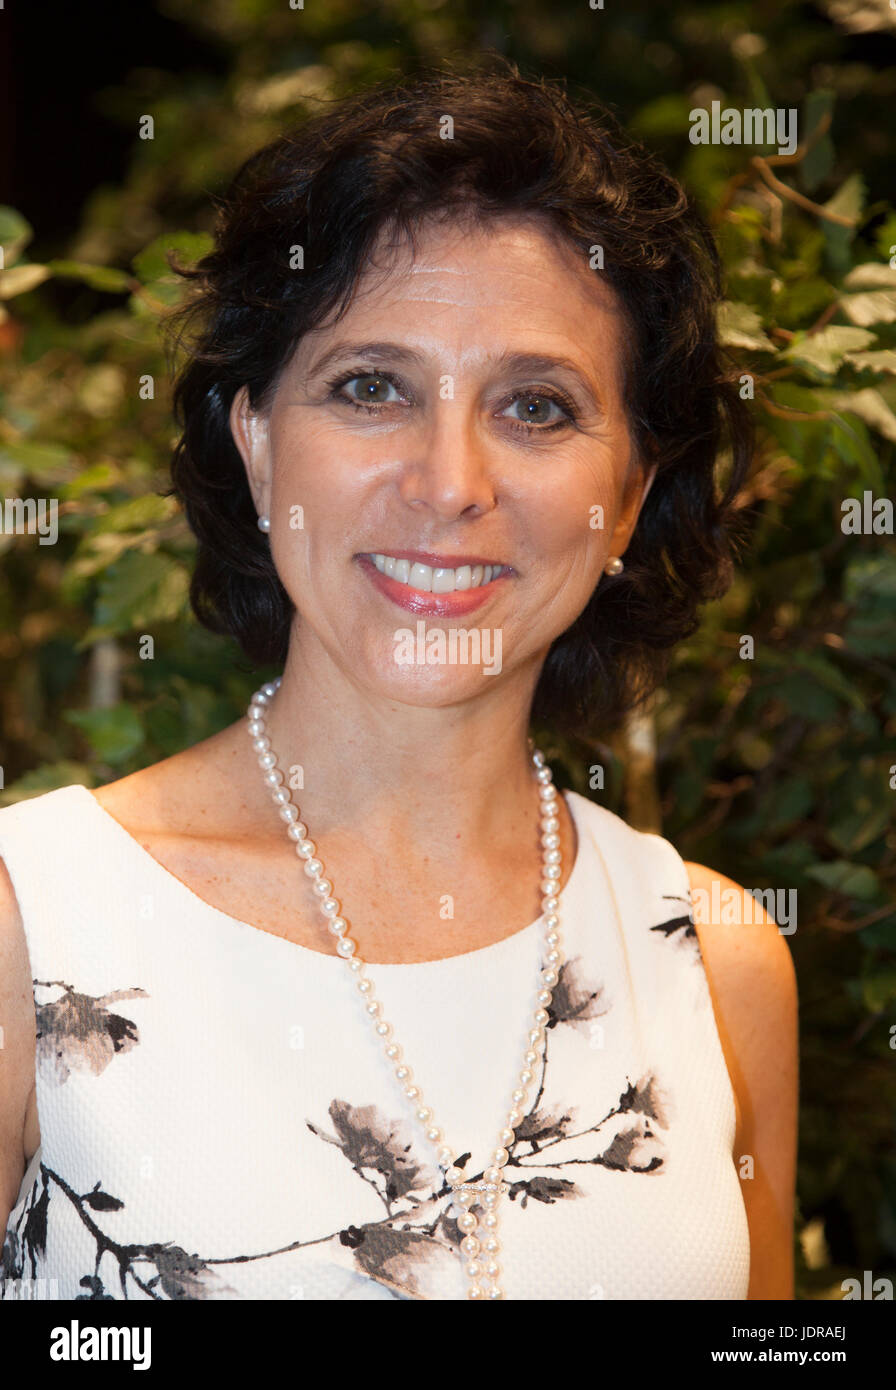 MADELEINE ONNE dancer of the Swedish Royal court and founder of Stockholm 59 degree north and from 2009 artistic - Stock Image